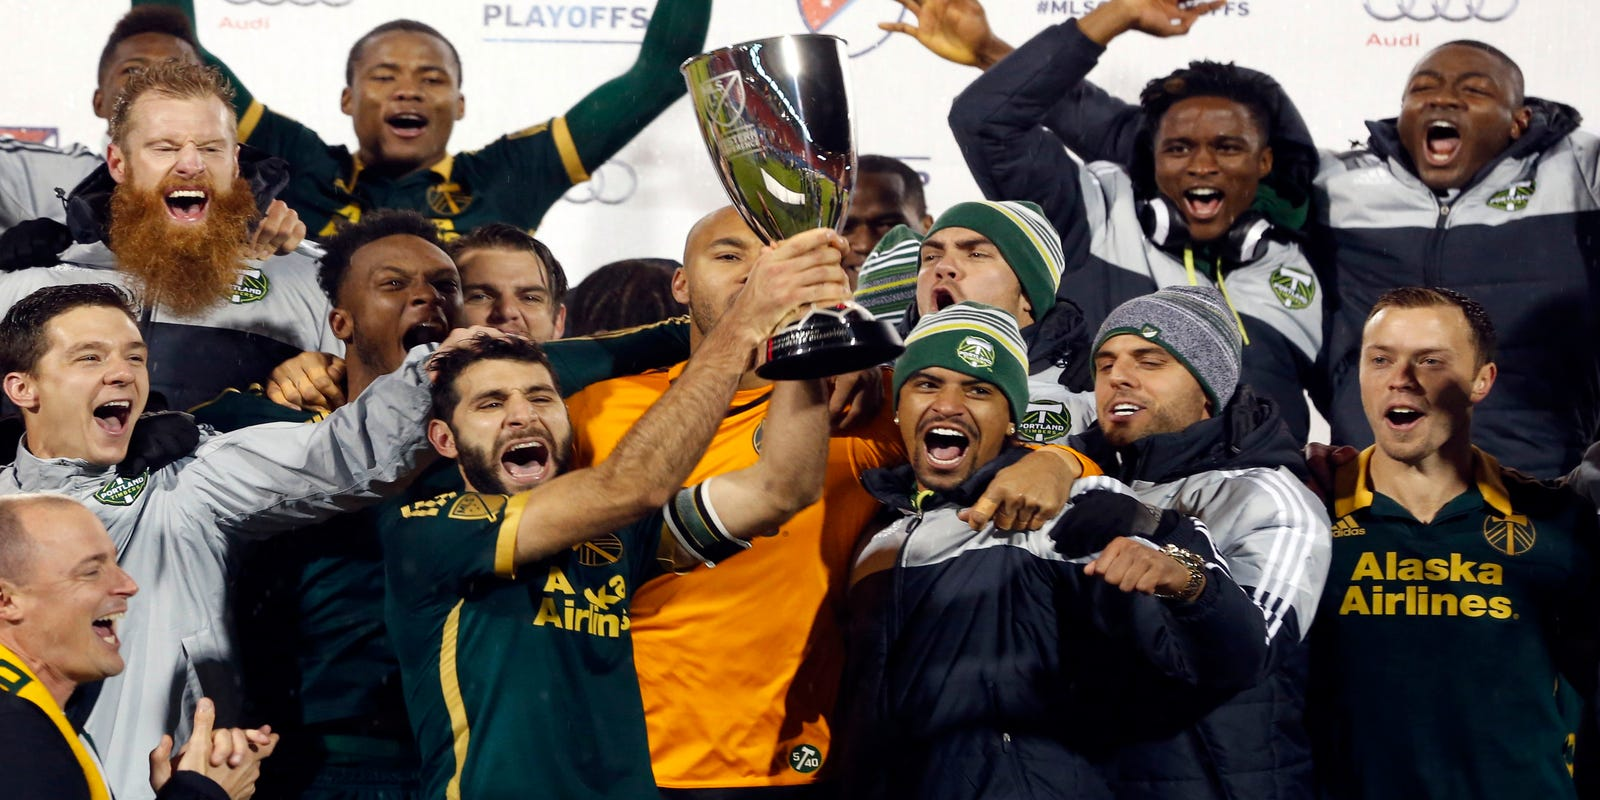 Timbers beat FC Dallas on aggregate to advance to MLS Cup